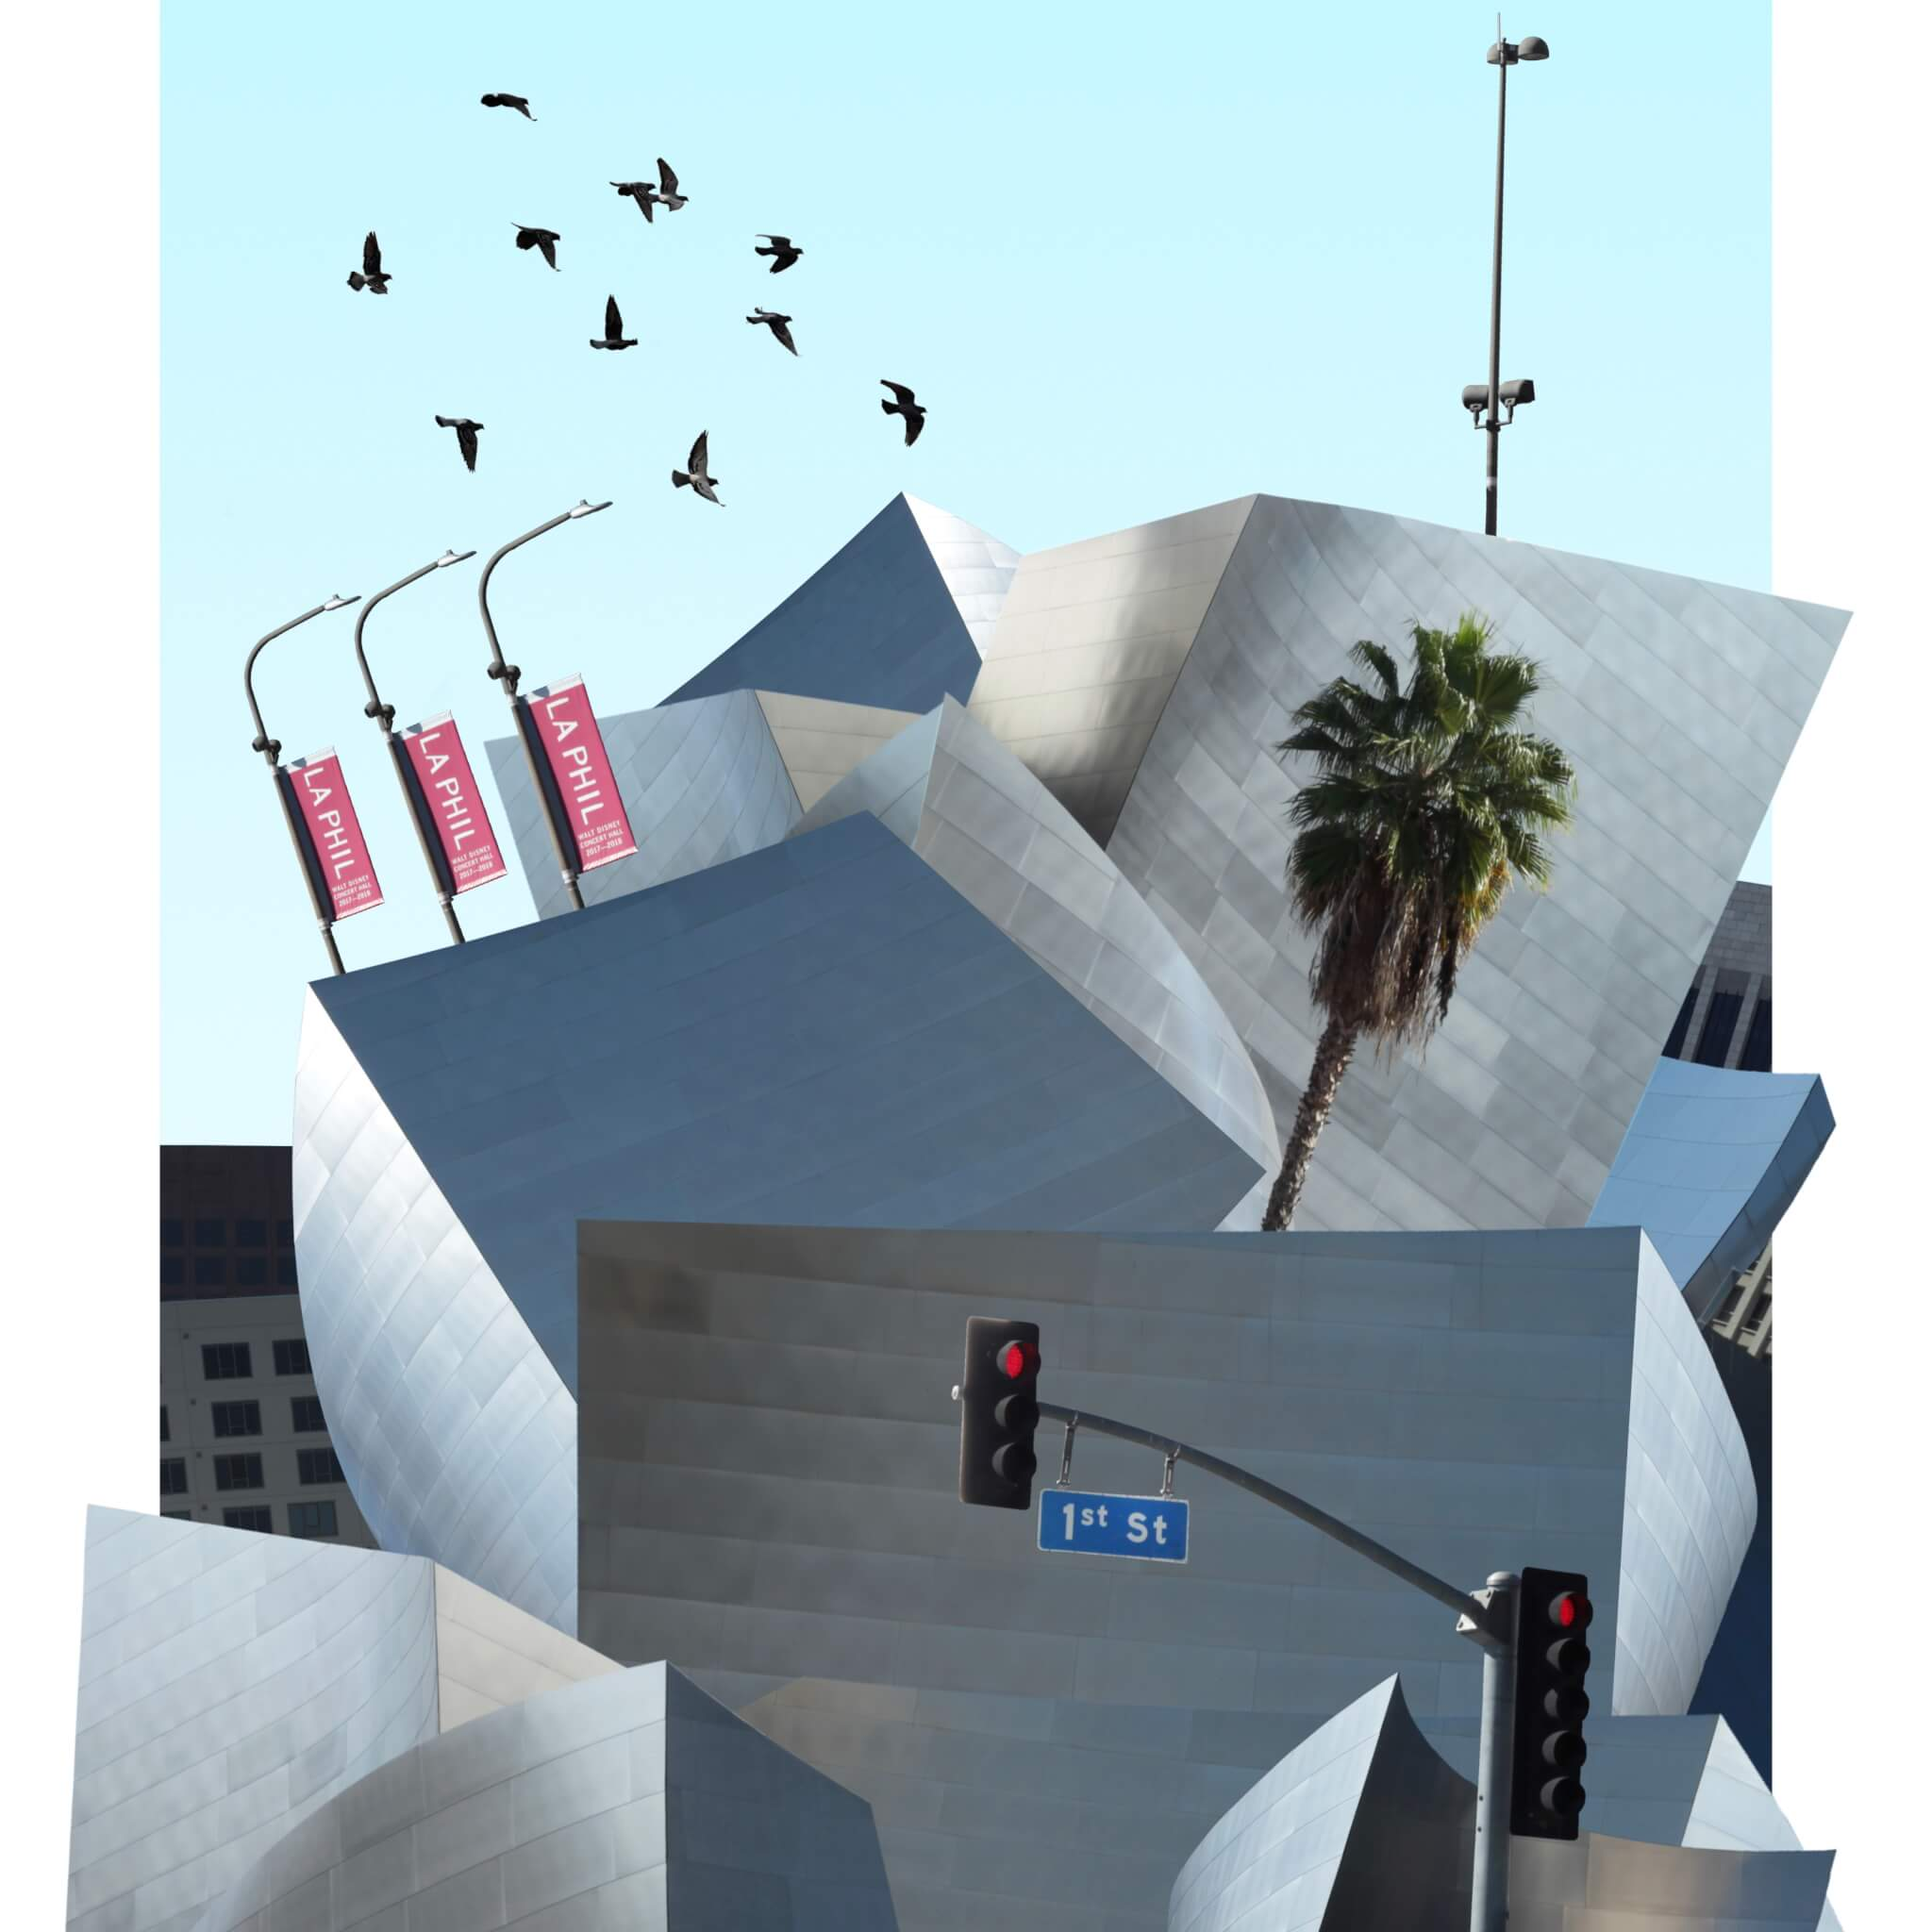 An architectural mash-up image by digital artist Jorge Cabrera